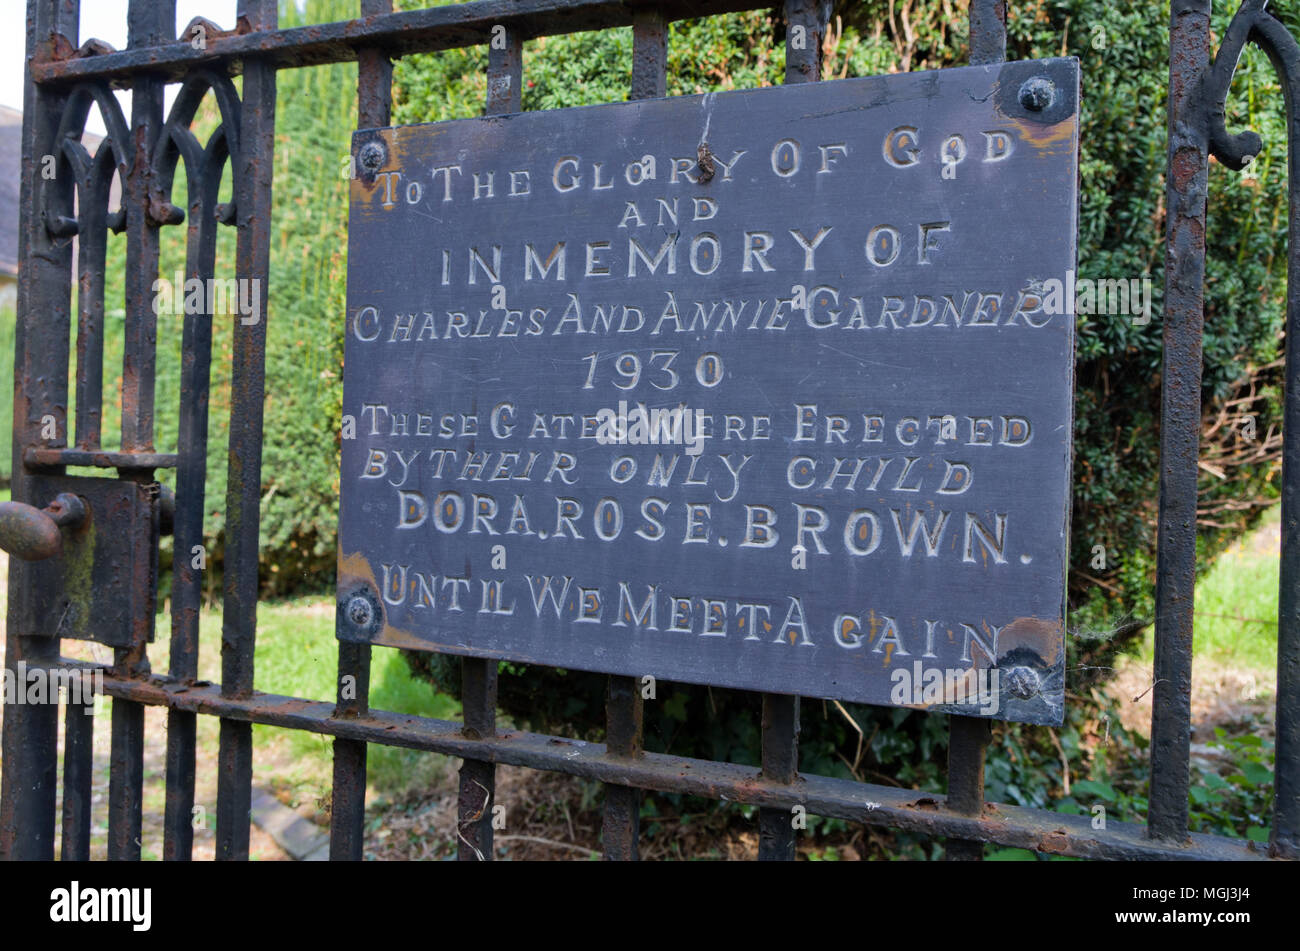 Sign on church gates indicating they were erected by Dora Brown in memory of her parents; Lower Shuckburgh, Warwickshire, UK - Stock Image